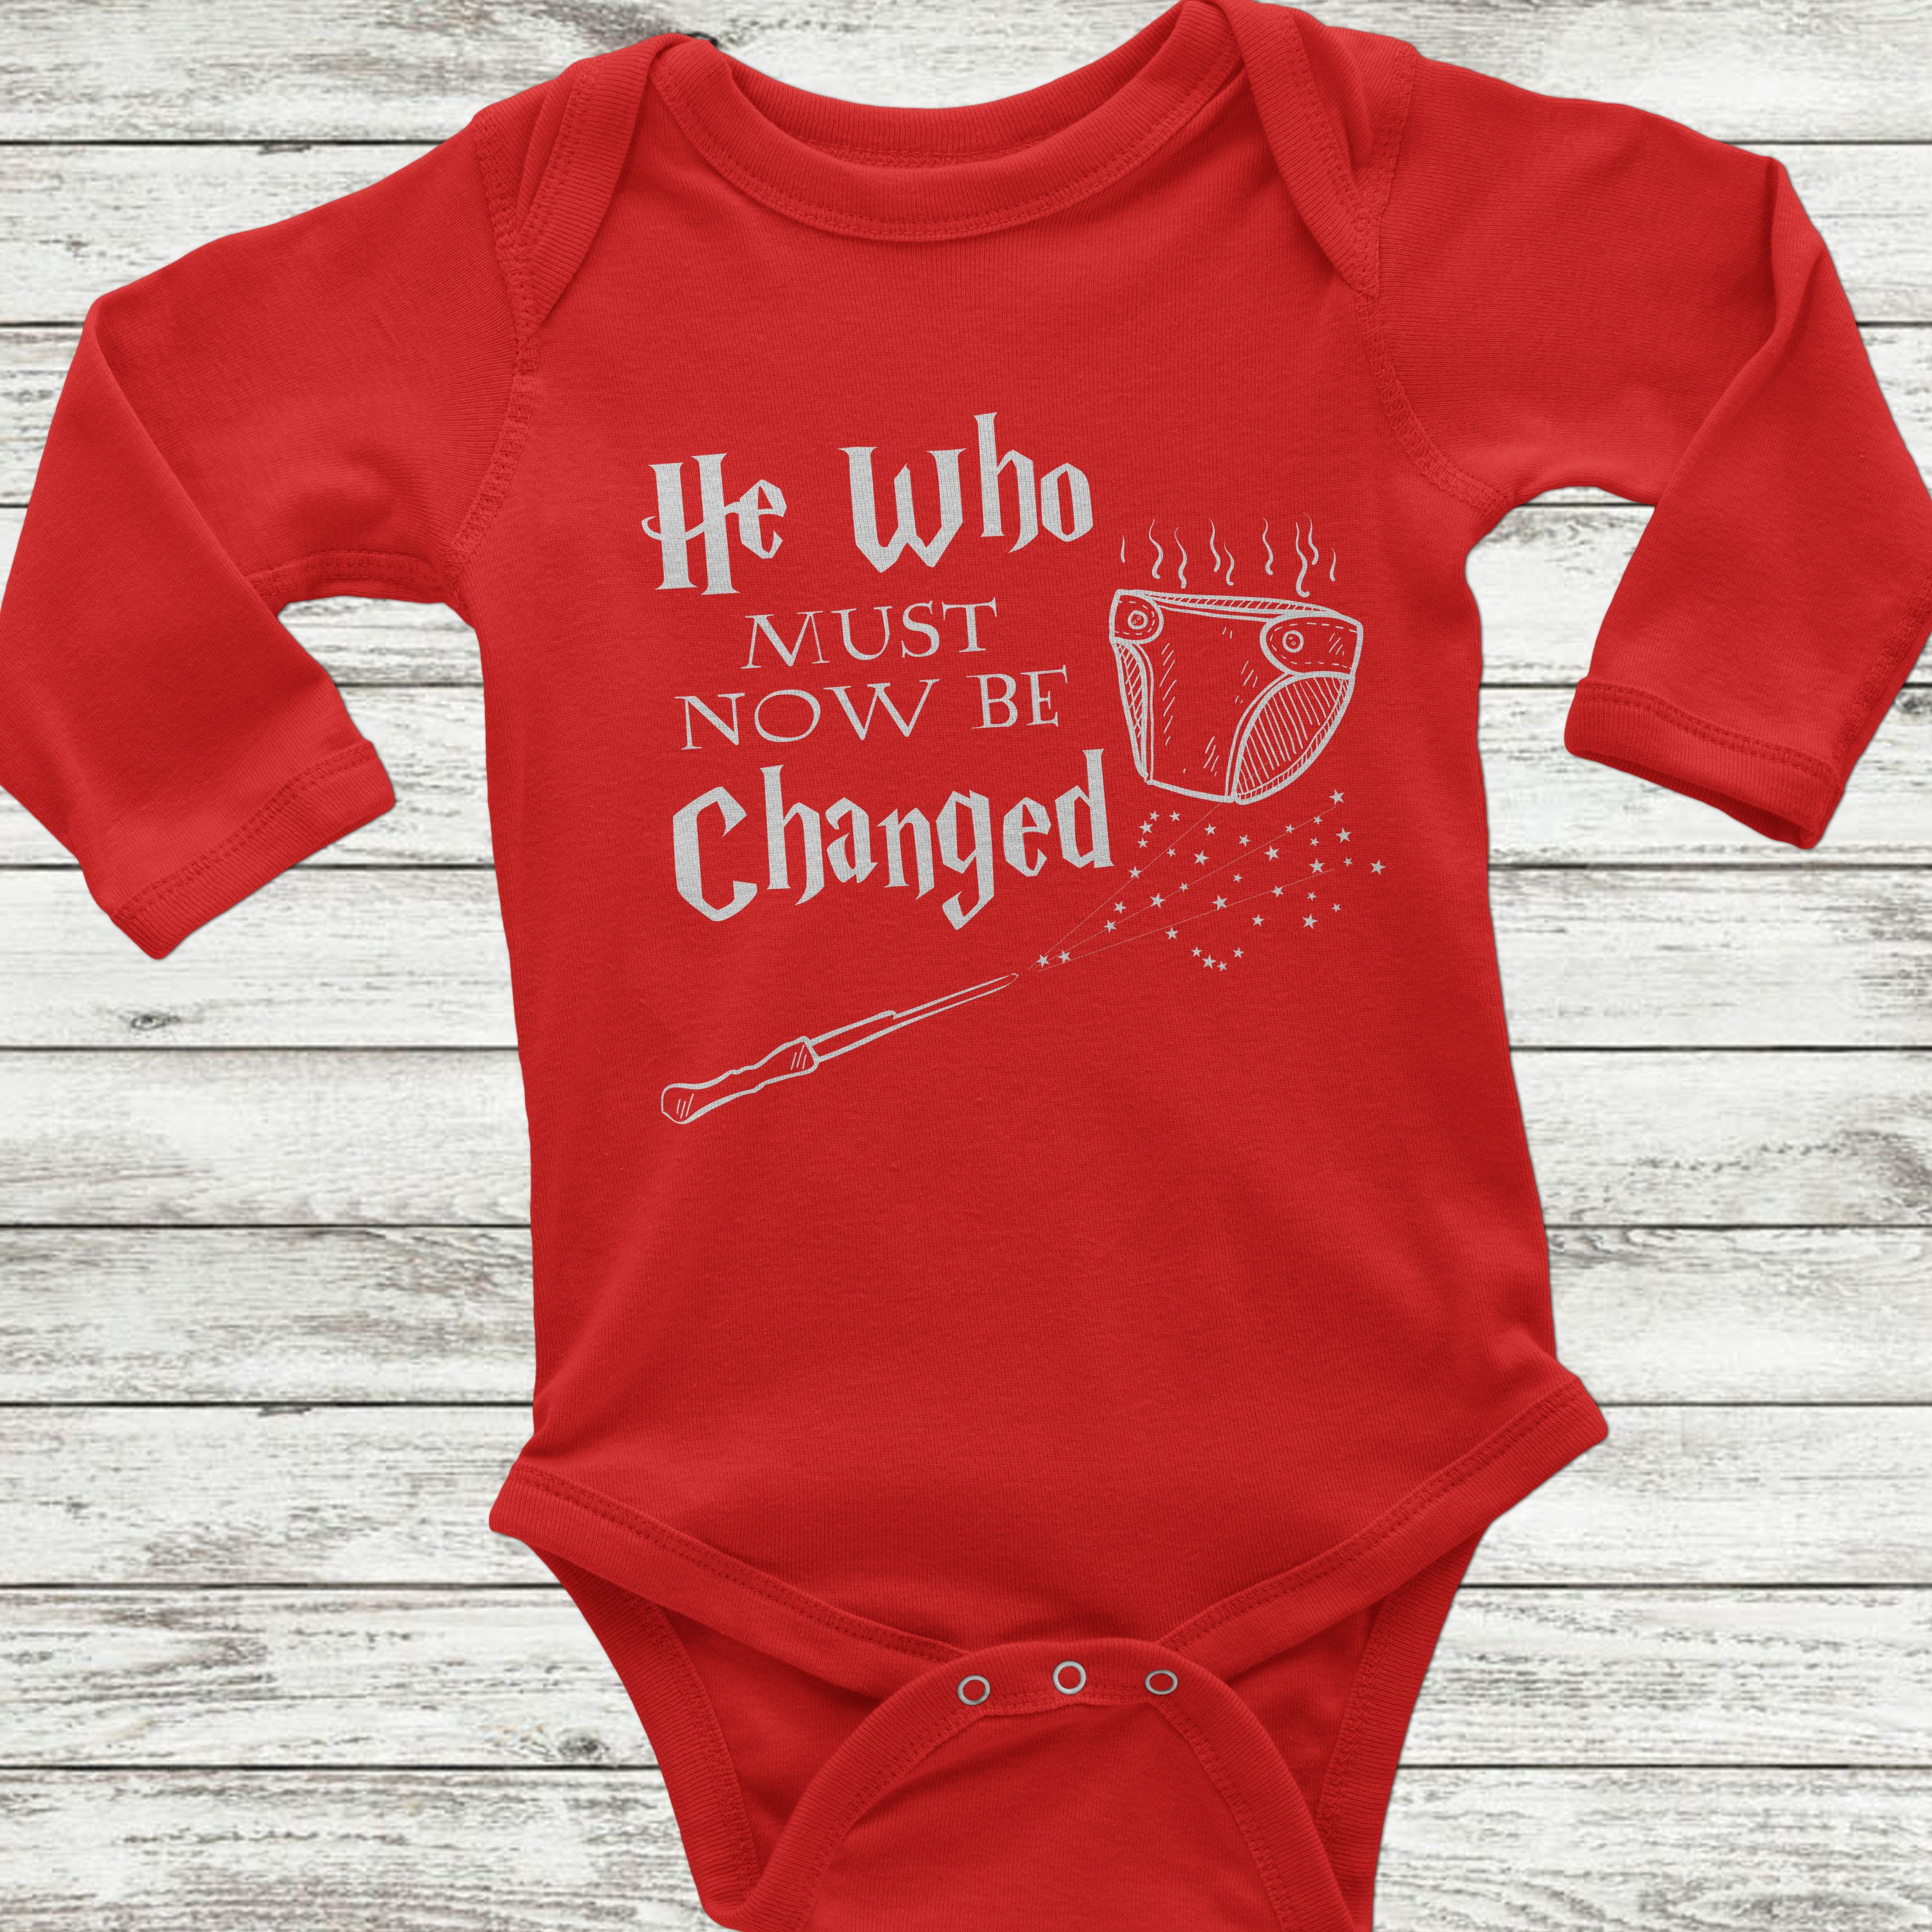 7be81c2e0 He who must now be changed, Funny Harry Potter Baby Onesie, Long Sleeve  Onesie, Harry Potter Baby, Harry Potter Baby clothes, HP baby shirt by ...